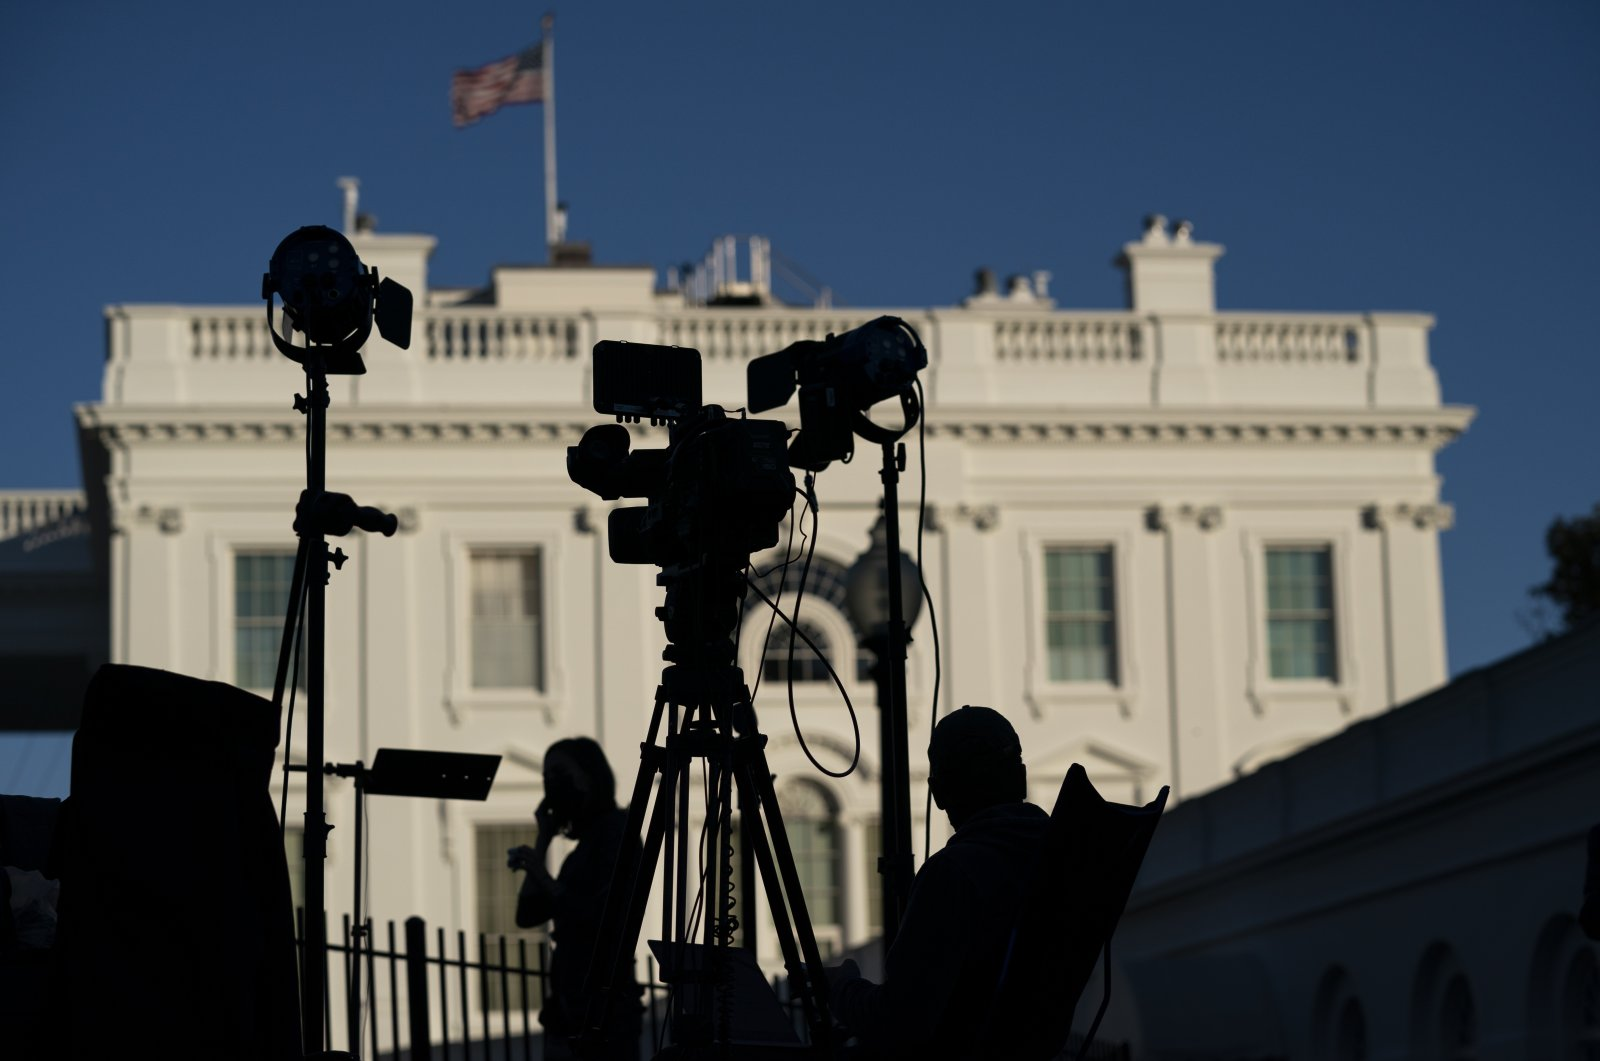 Journalists gather outside the White House as Americans await the result of the U.S. presidential elections, in Washington, D.C., Nov. 4, 2020. (AP Photo)